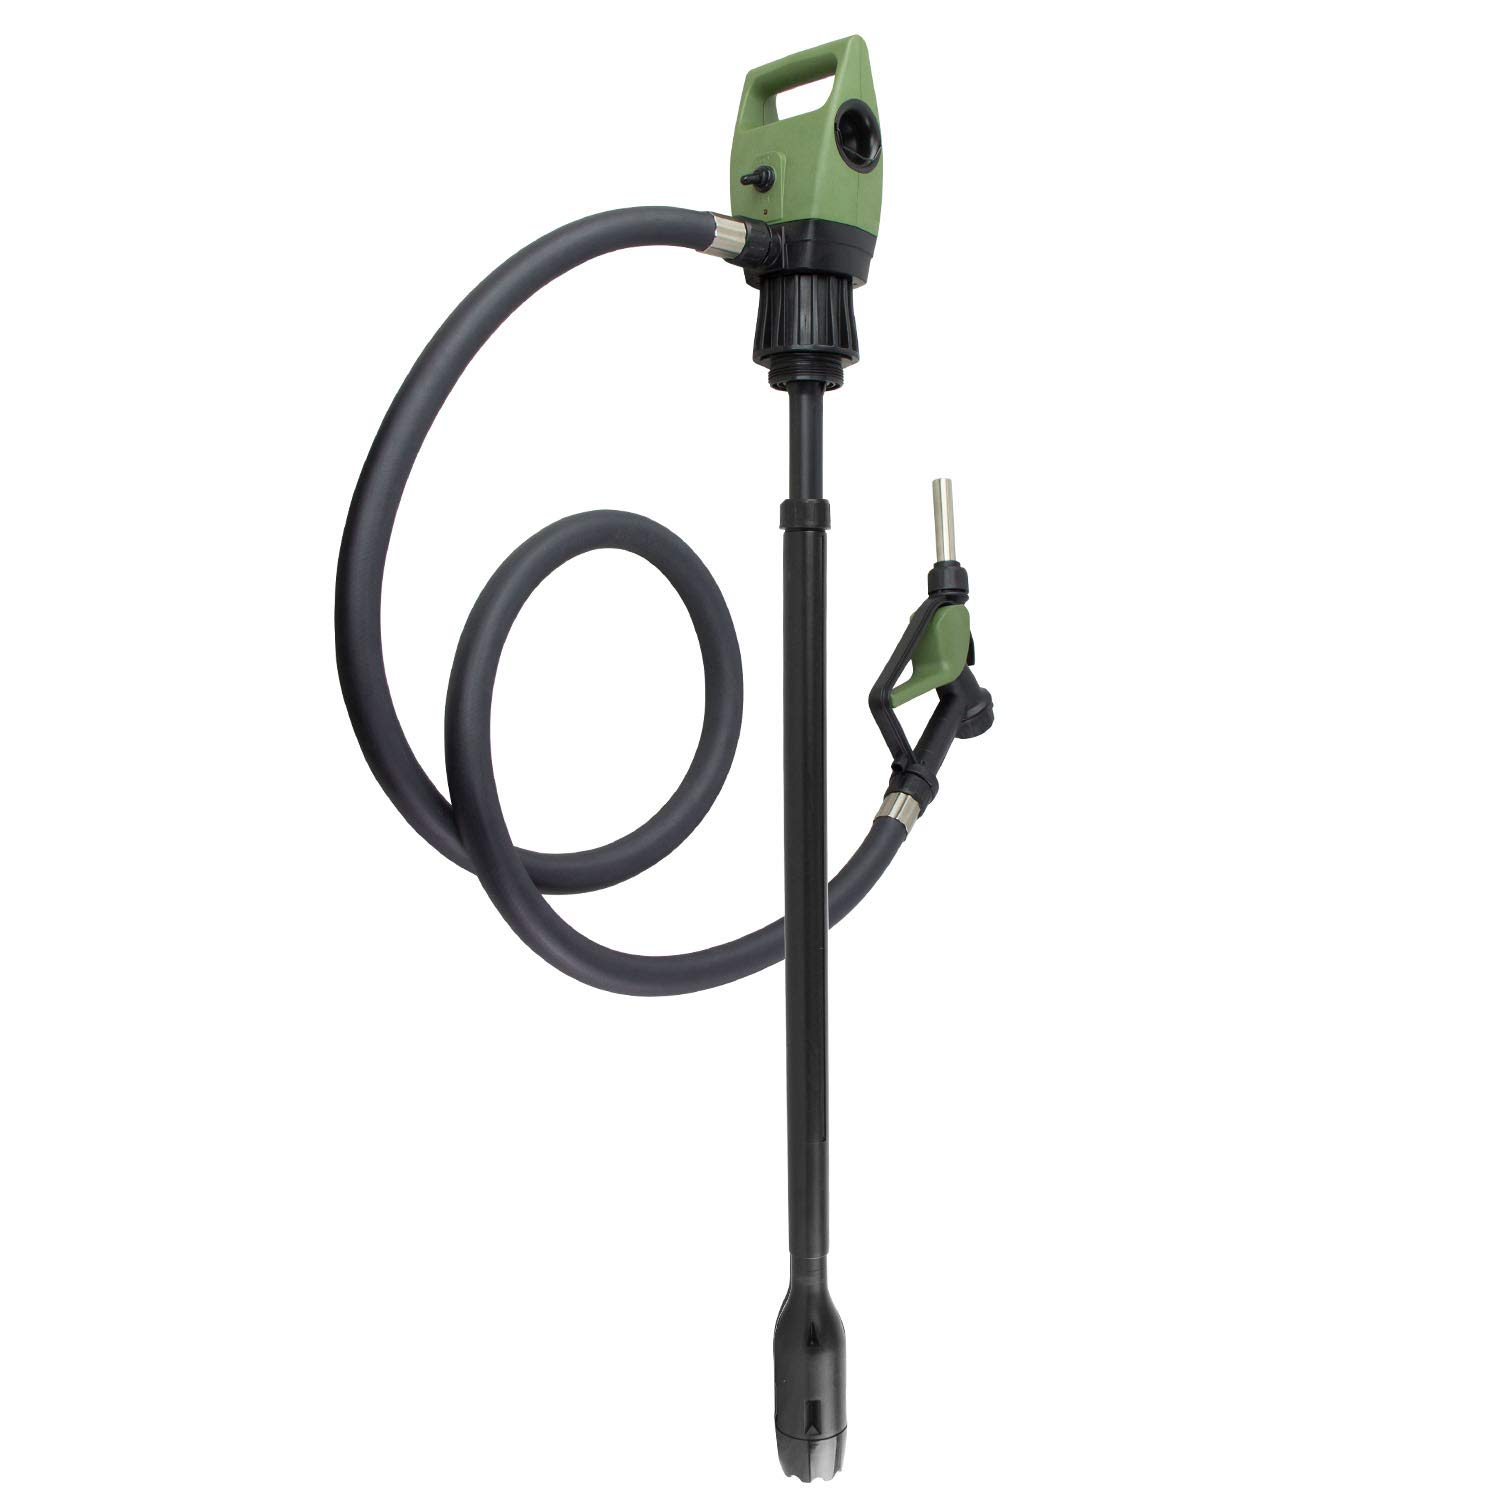 TERA PUMP TReDRUM 33.5'' Standard Plug-in Electric Drum Barrel Pump for DEF, Diesel, Water(NOT for Drinking Water/Gasoline/Flammable Liquids/Concentrated Acids)